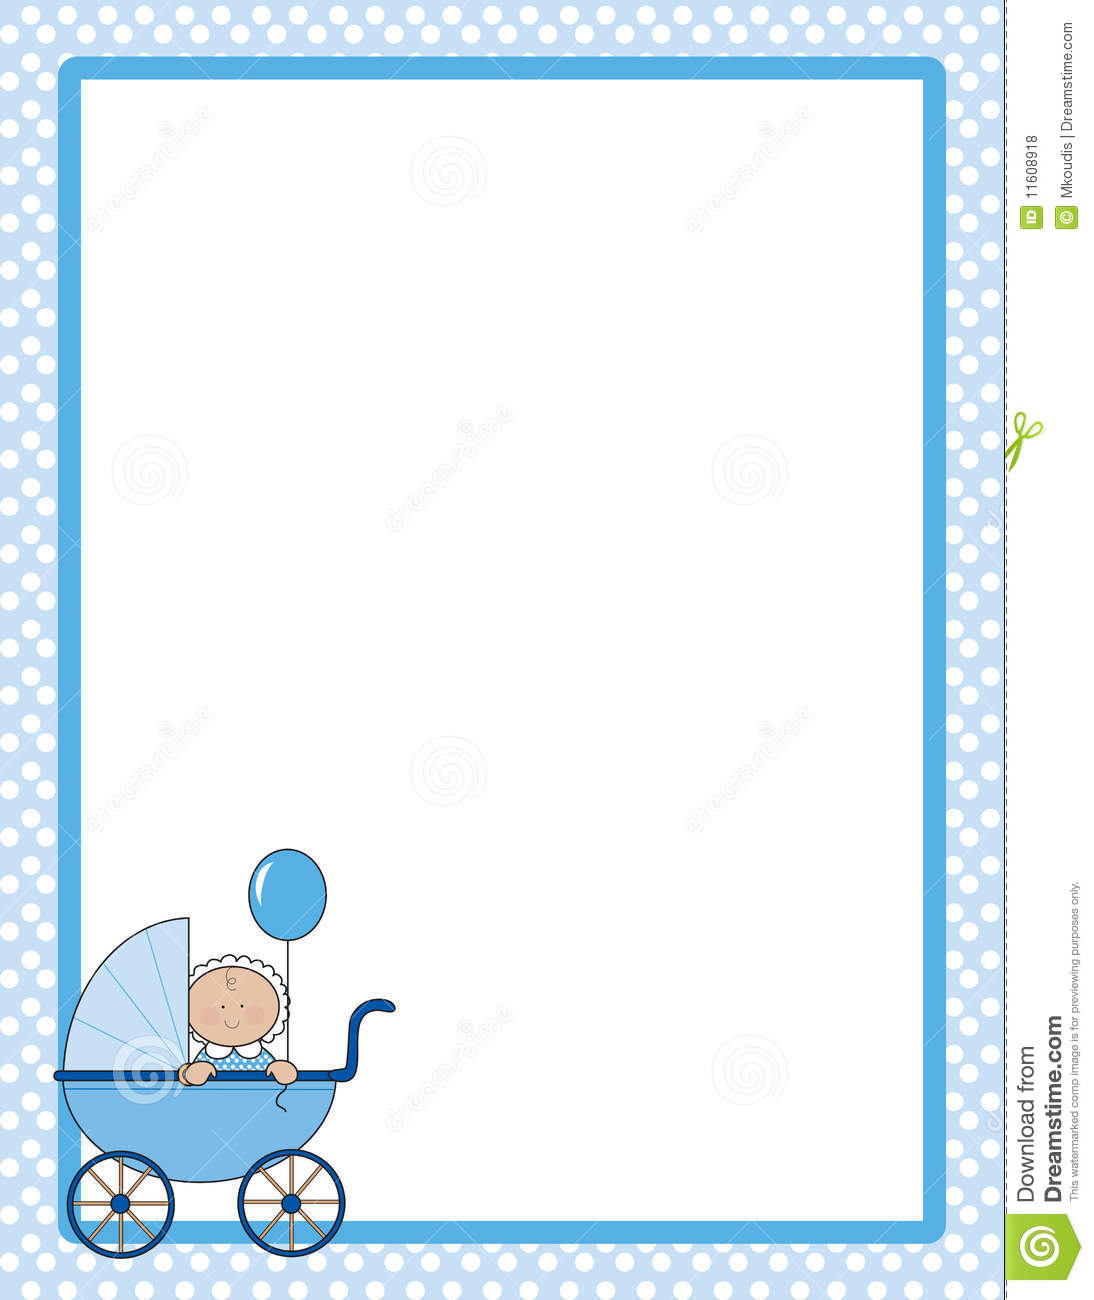 Cute Twin Baby Boy And Girl Wallpapers Baby Border Boy Royalty Free Stock Photos Image 11608918